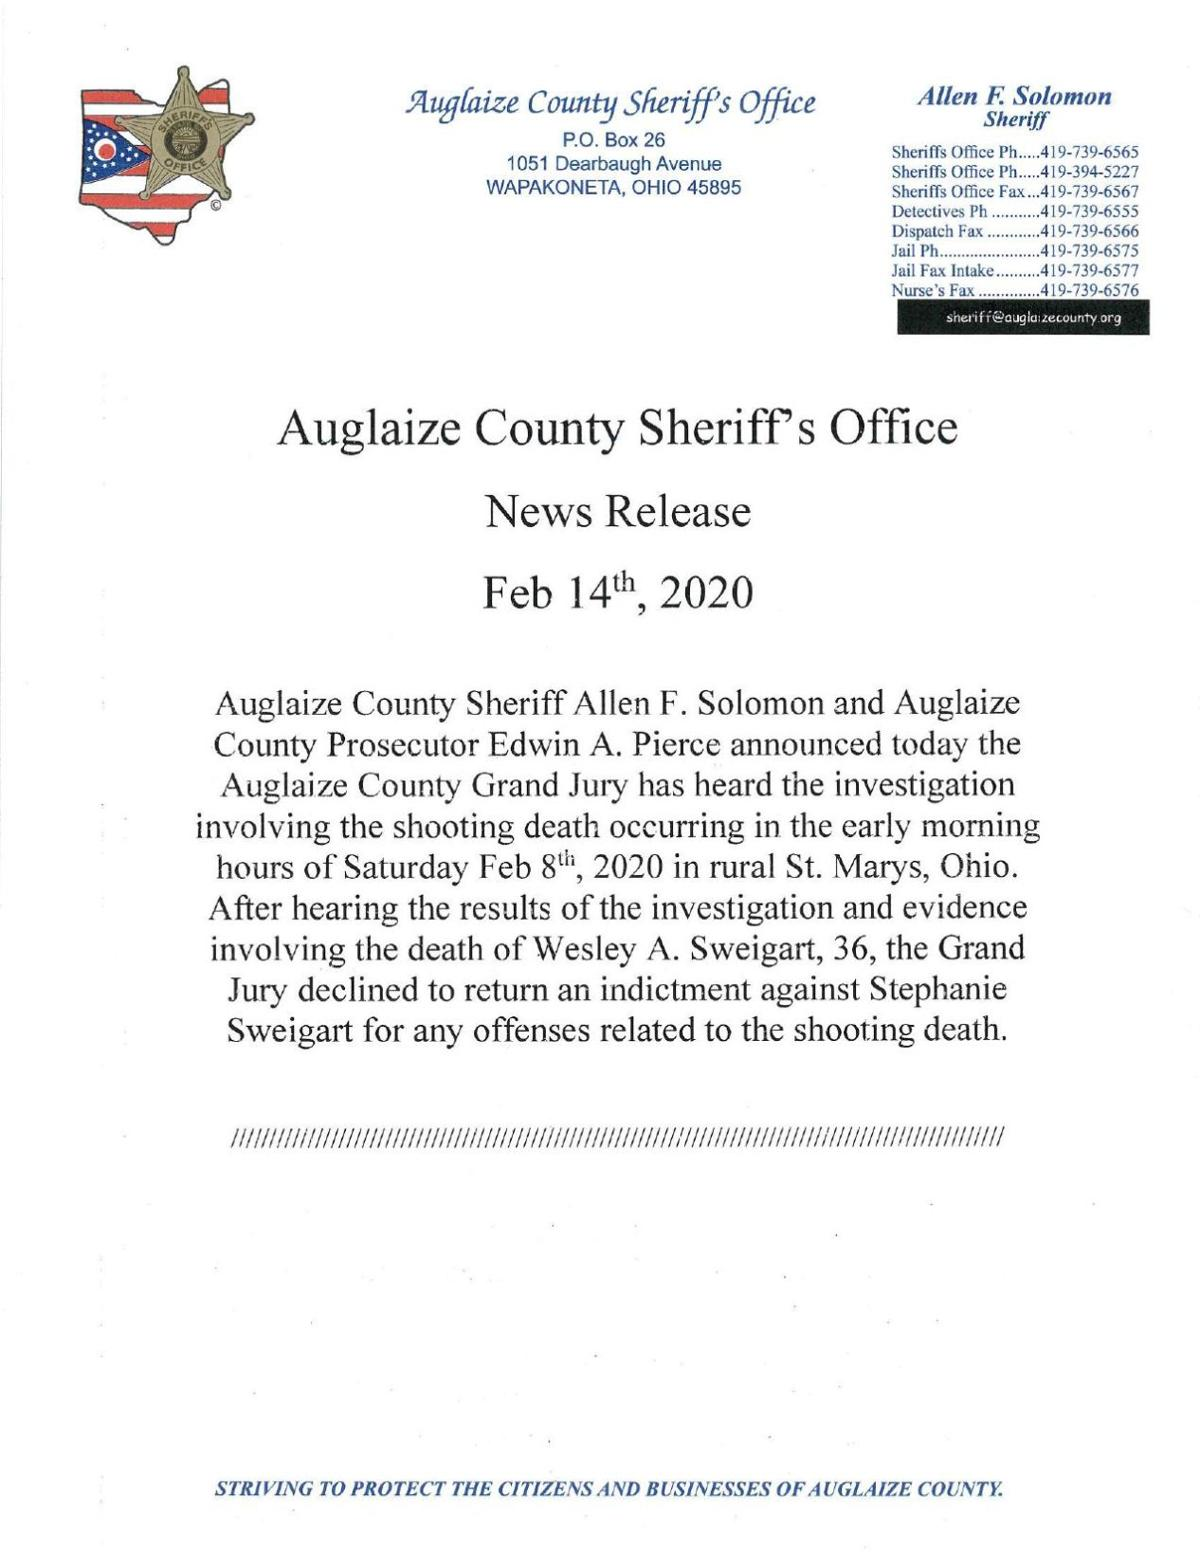 Sweigart News Release No Charges.pdf